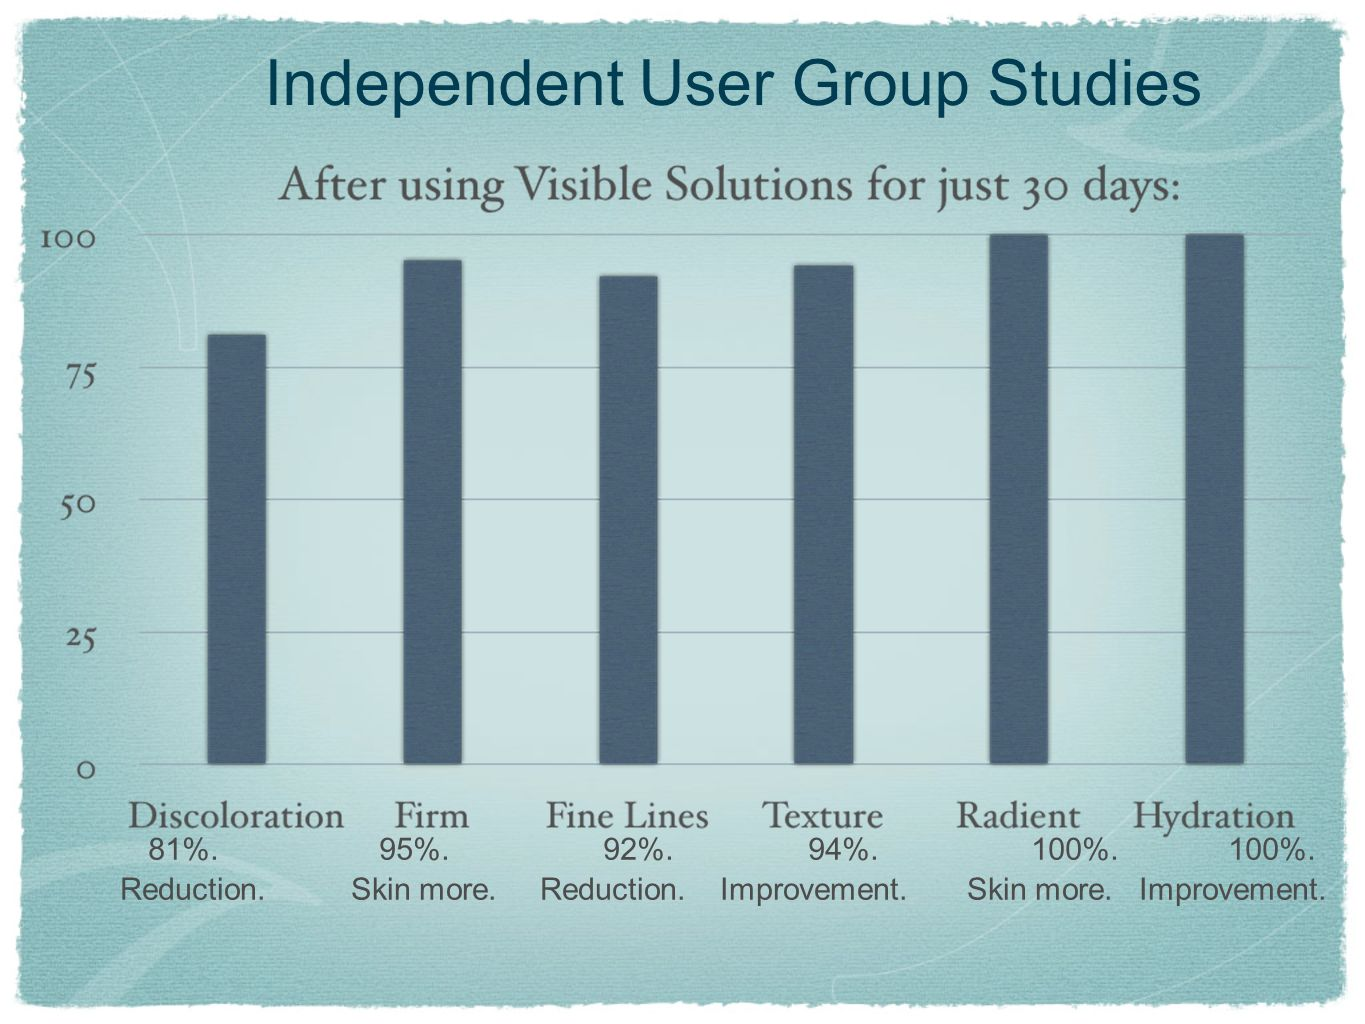 Independent User Group Studies